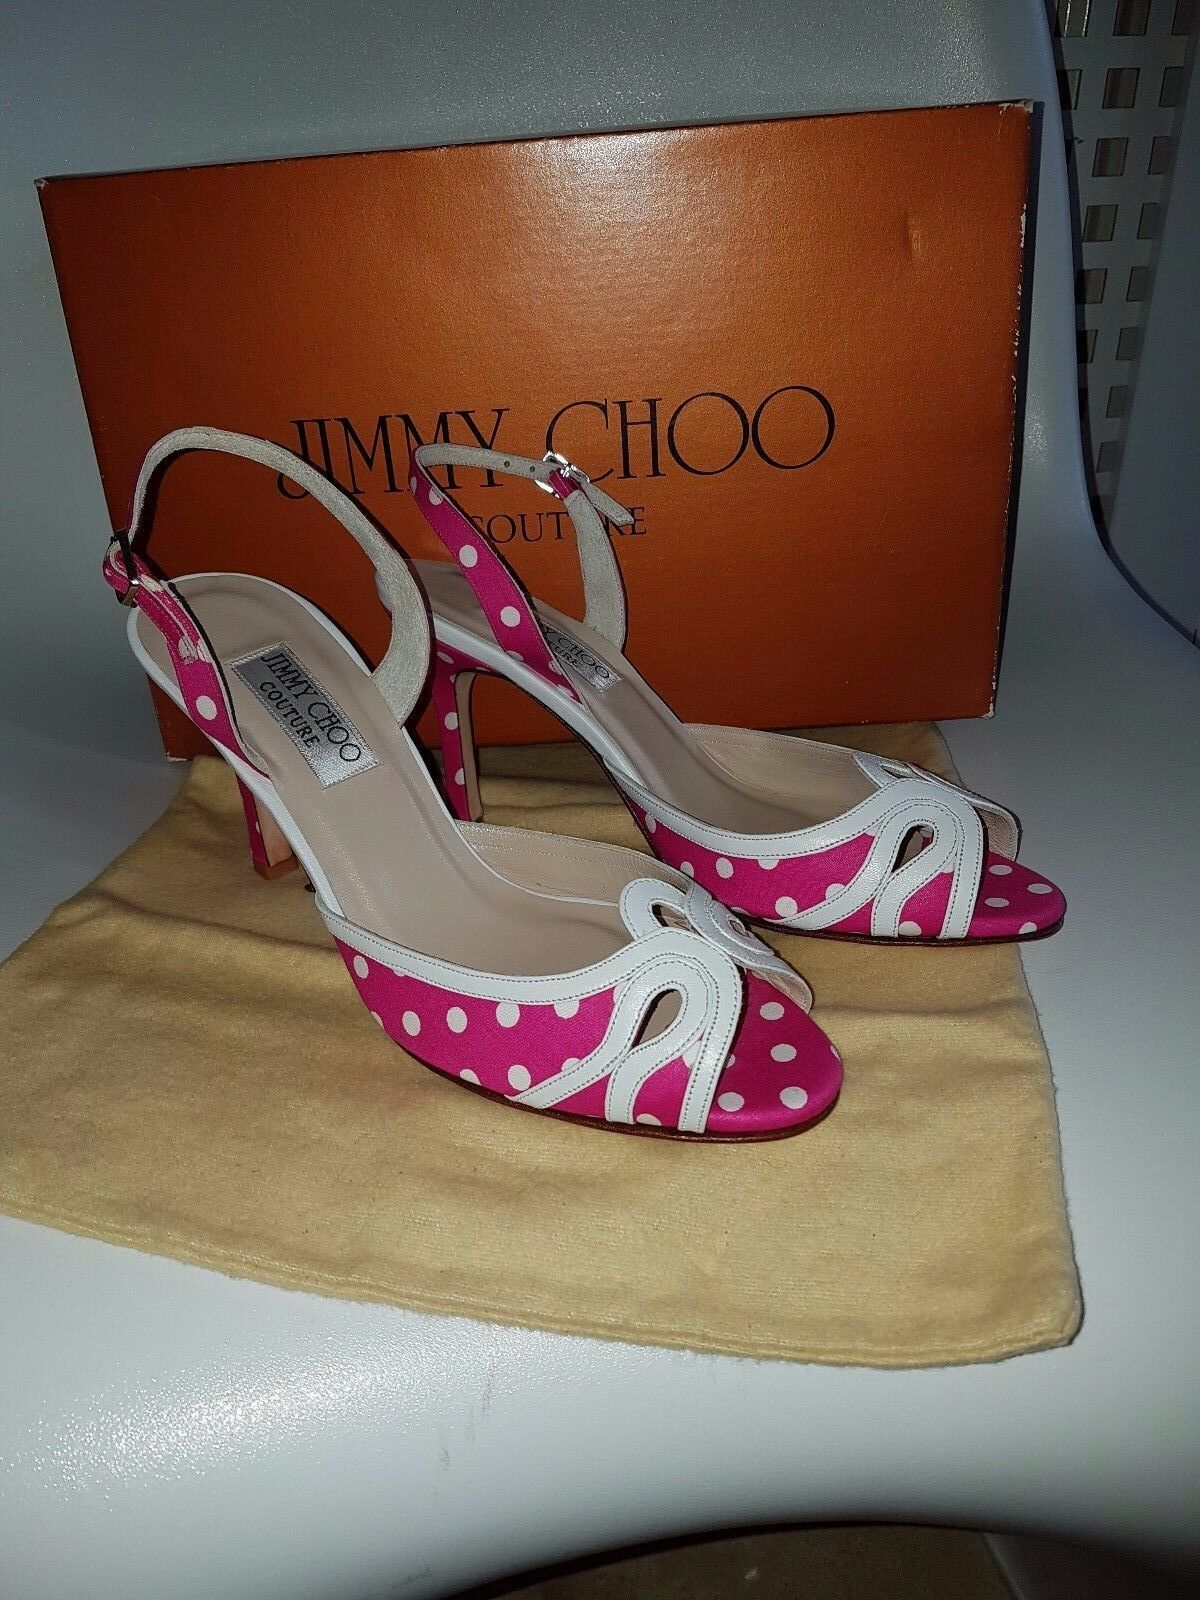 Signagture New Jimmy Choo    s Talons Chaussures Taille 38 fait main 7cd08c